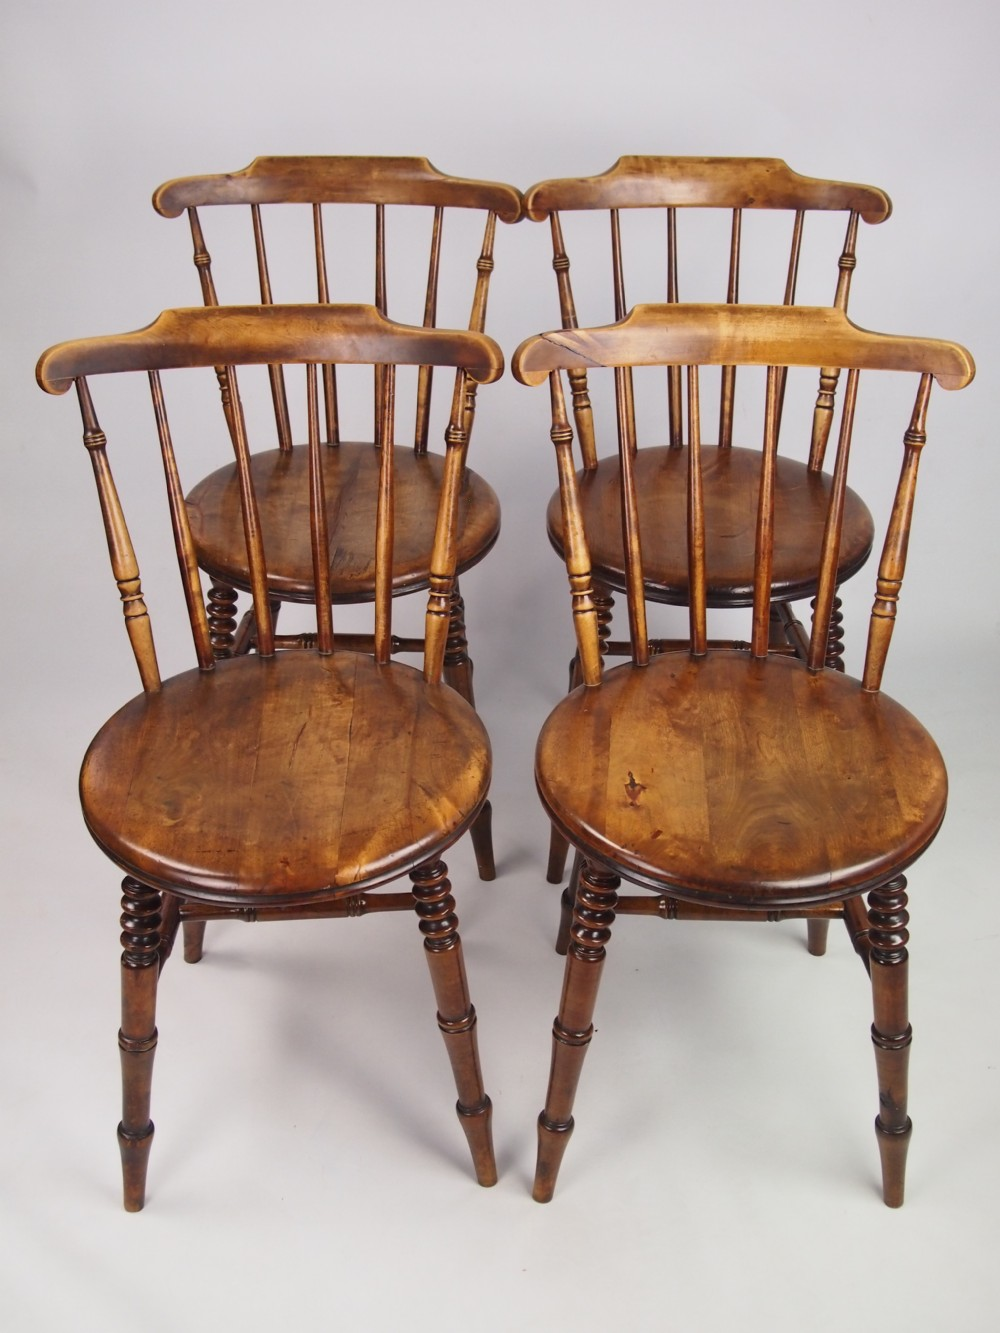 Antique Pine Kitchen Chairs - Antique Pine Kitchen Chairs Antique Furniture